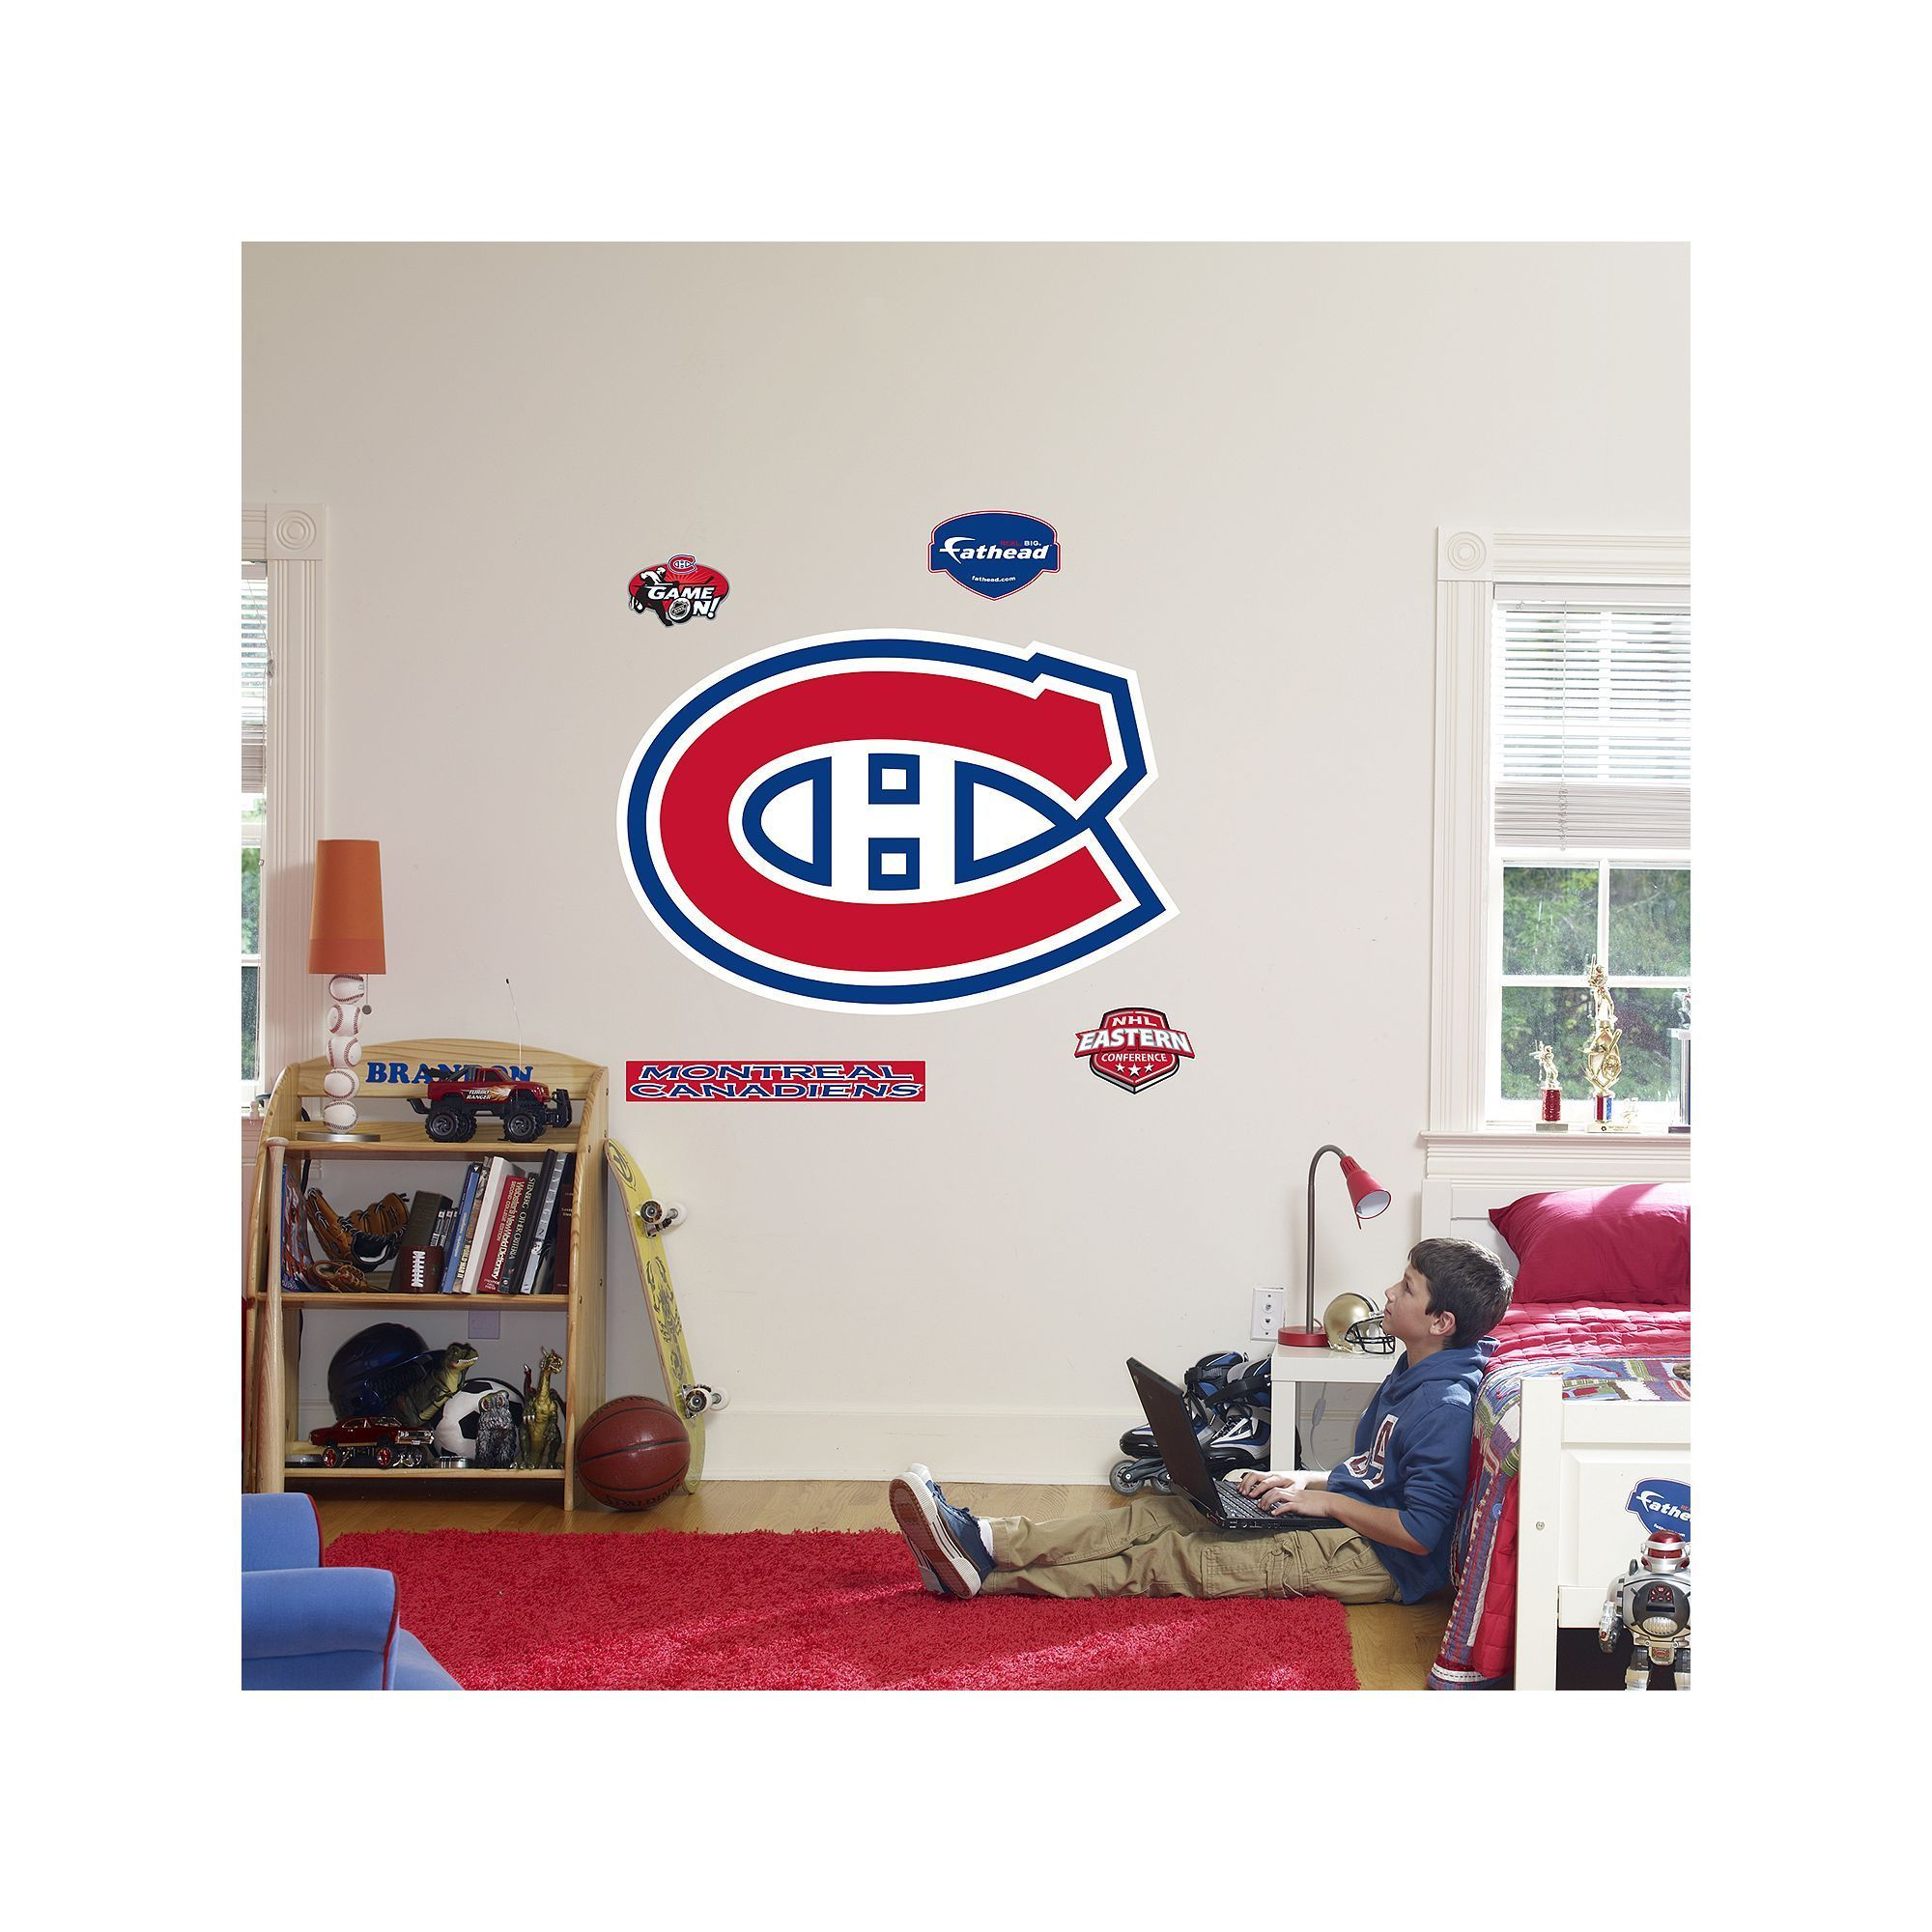 Fathead Montreal Canadiens Logo Wall Decal Multicolor Durable  sc 1 st  Pinterest & Fathead Montreal Canadiens Logo Wall Decal Multicolor | Wall decals ...